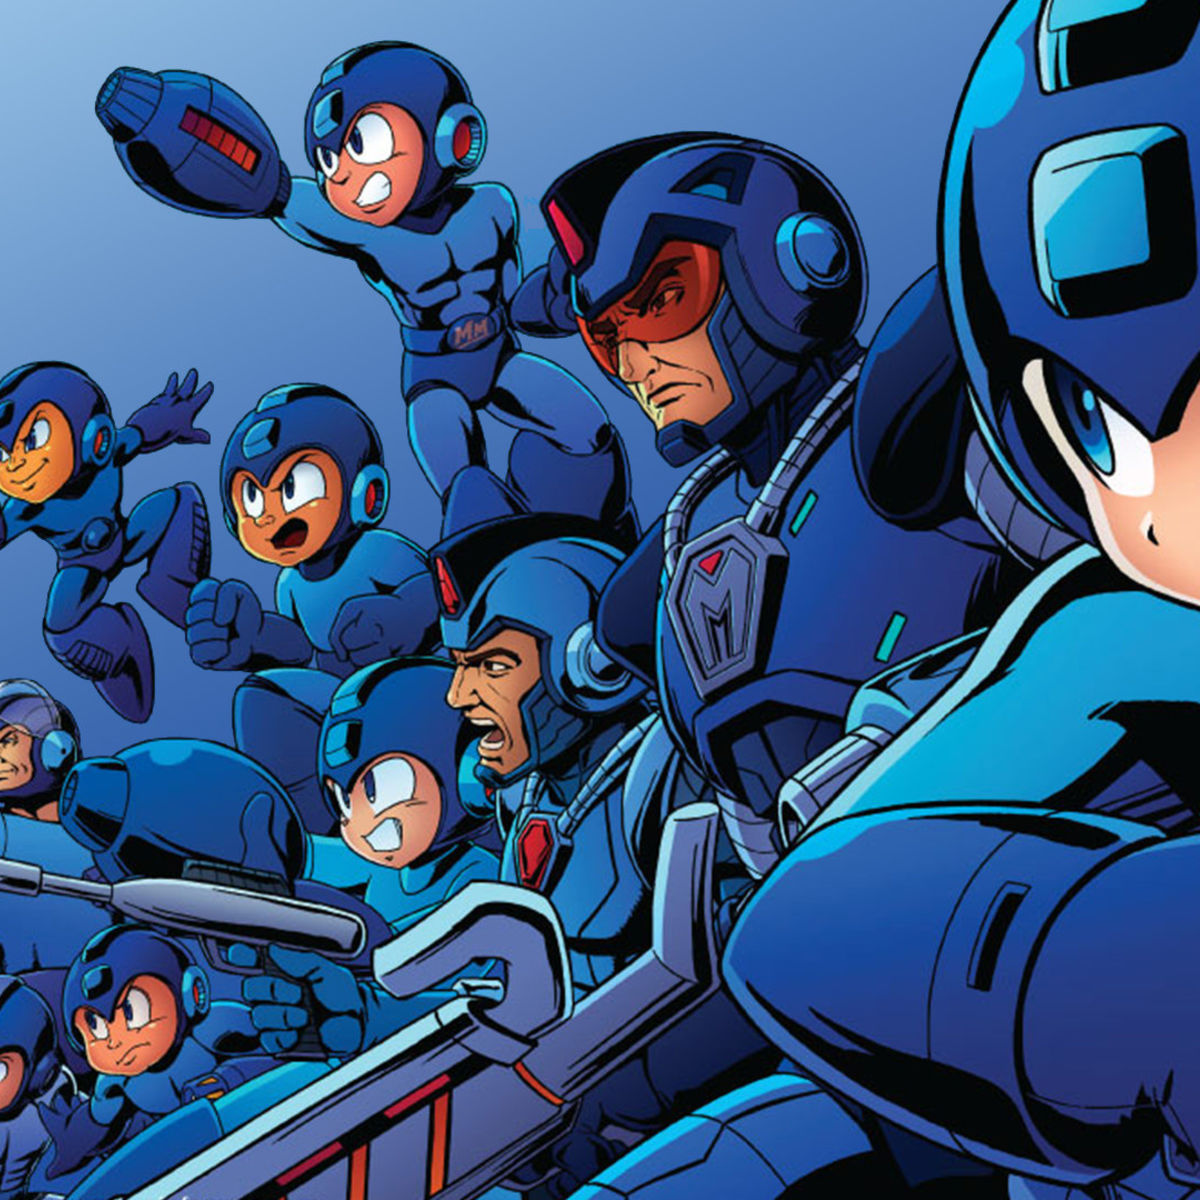 Mega Man 11 Gets a Demo on PS4, Available Now